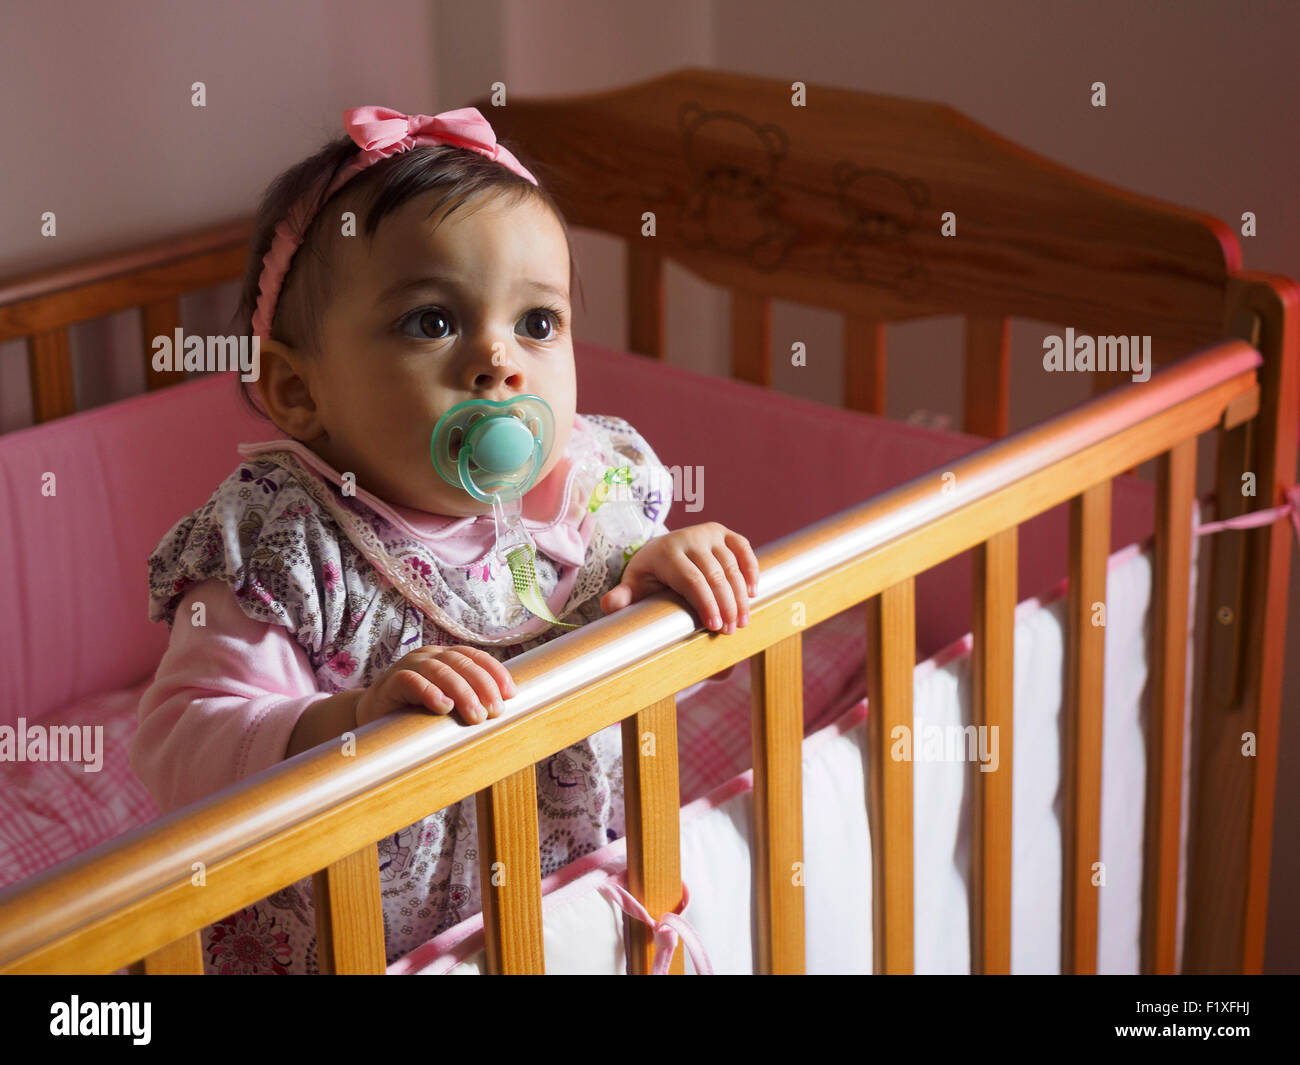 baby girl with pacifier inside crib stock photo 87249502 alamy